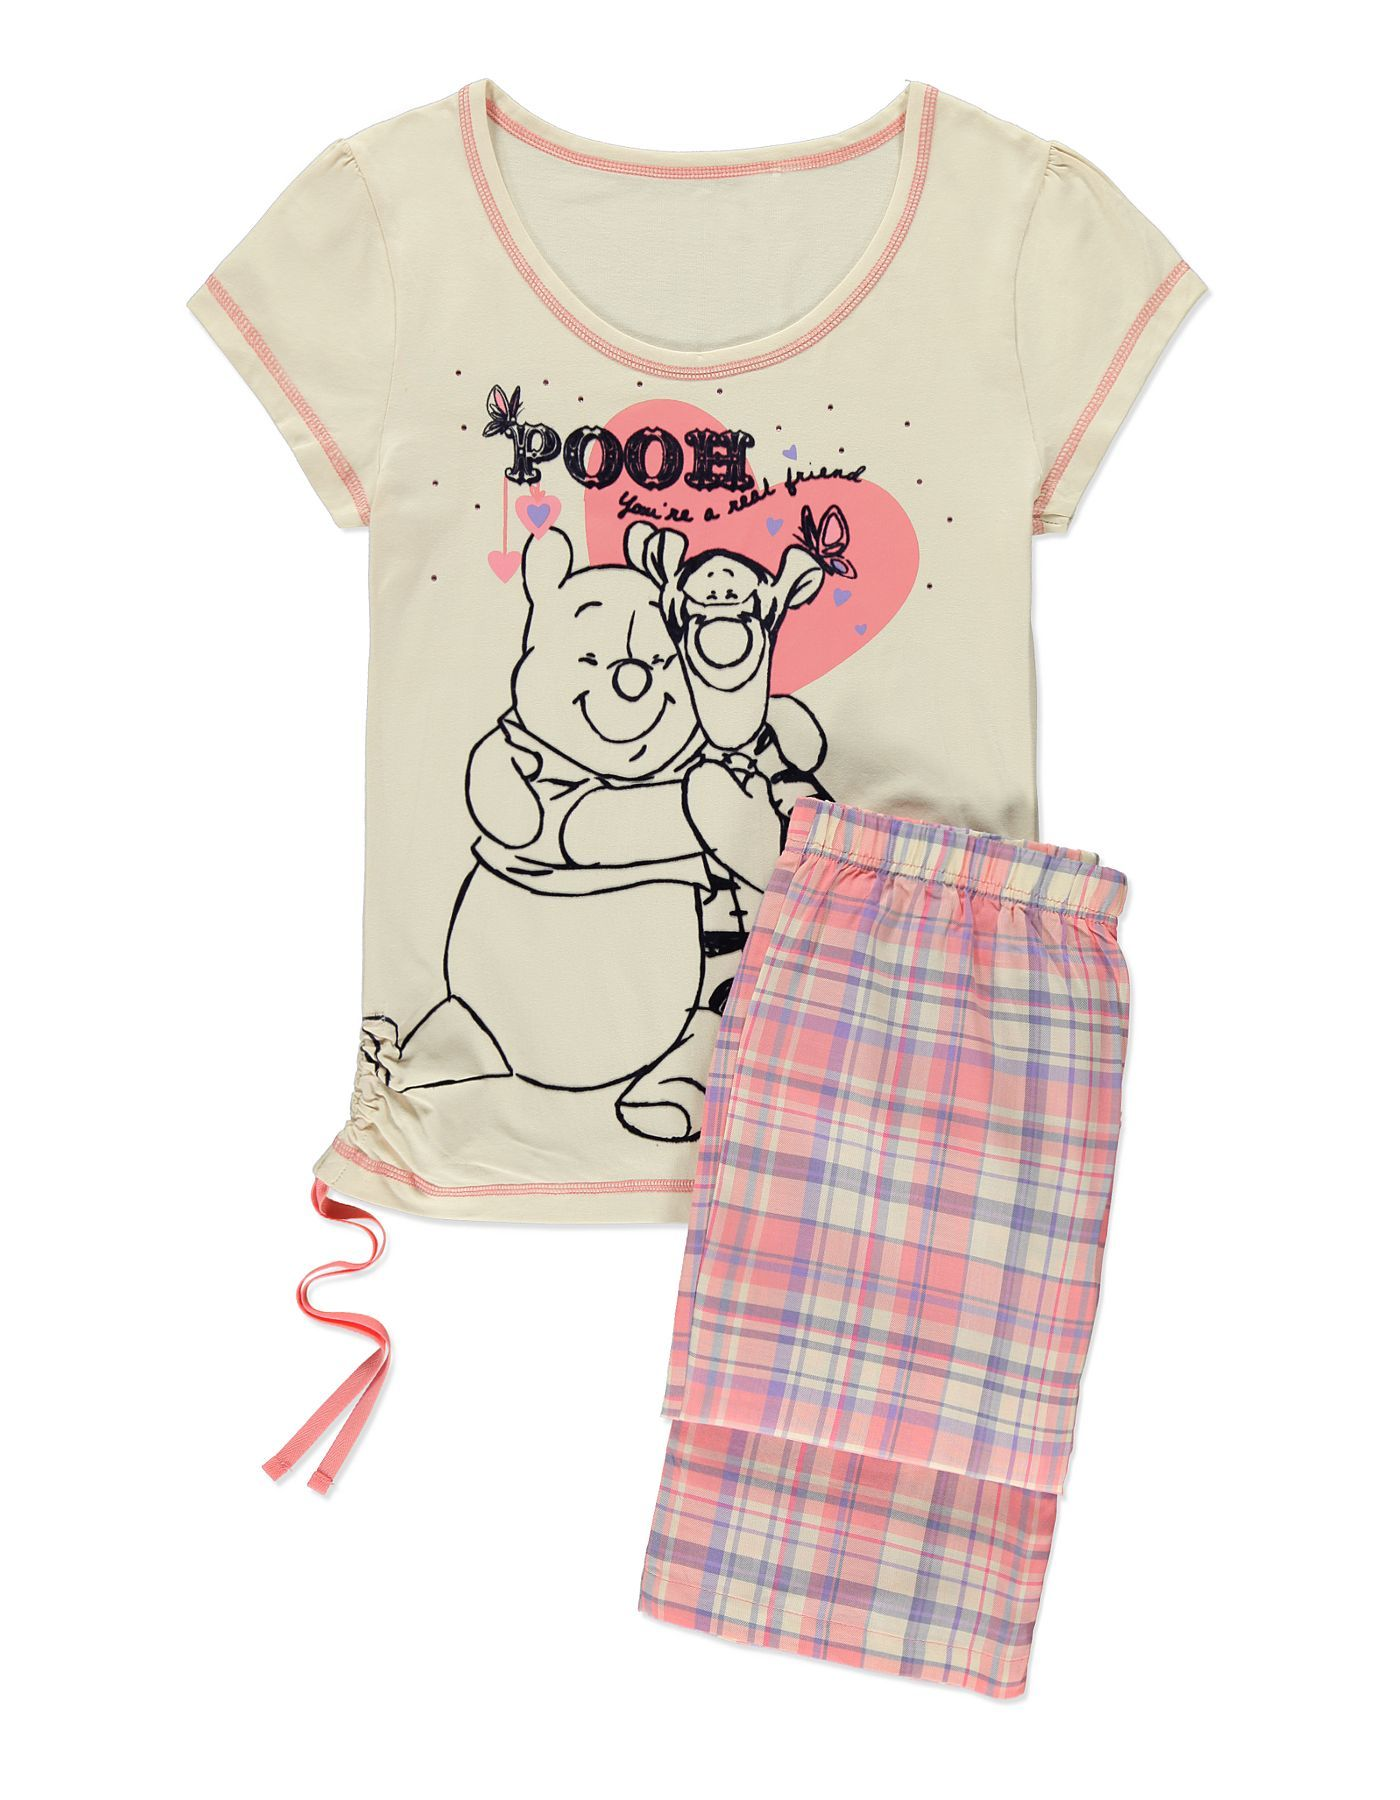 8814a3ab8c Pooh and Tigger Pyjama Set